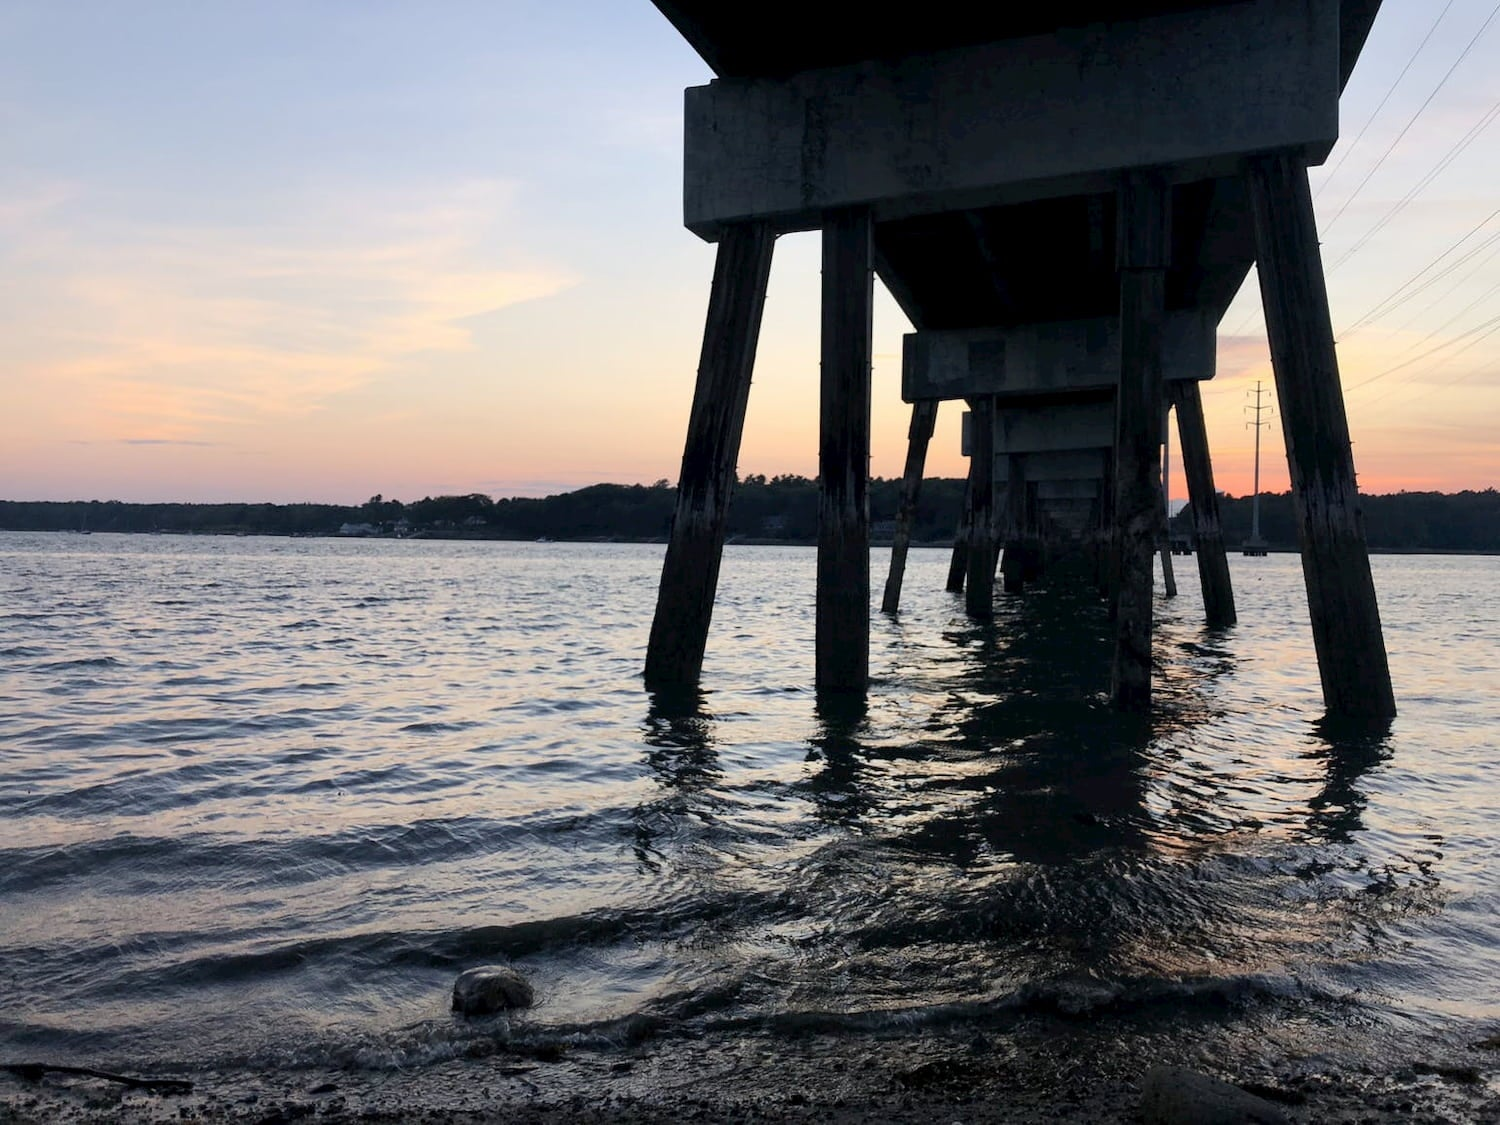 sunset view from under a pier and over the water